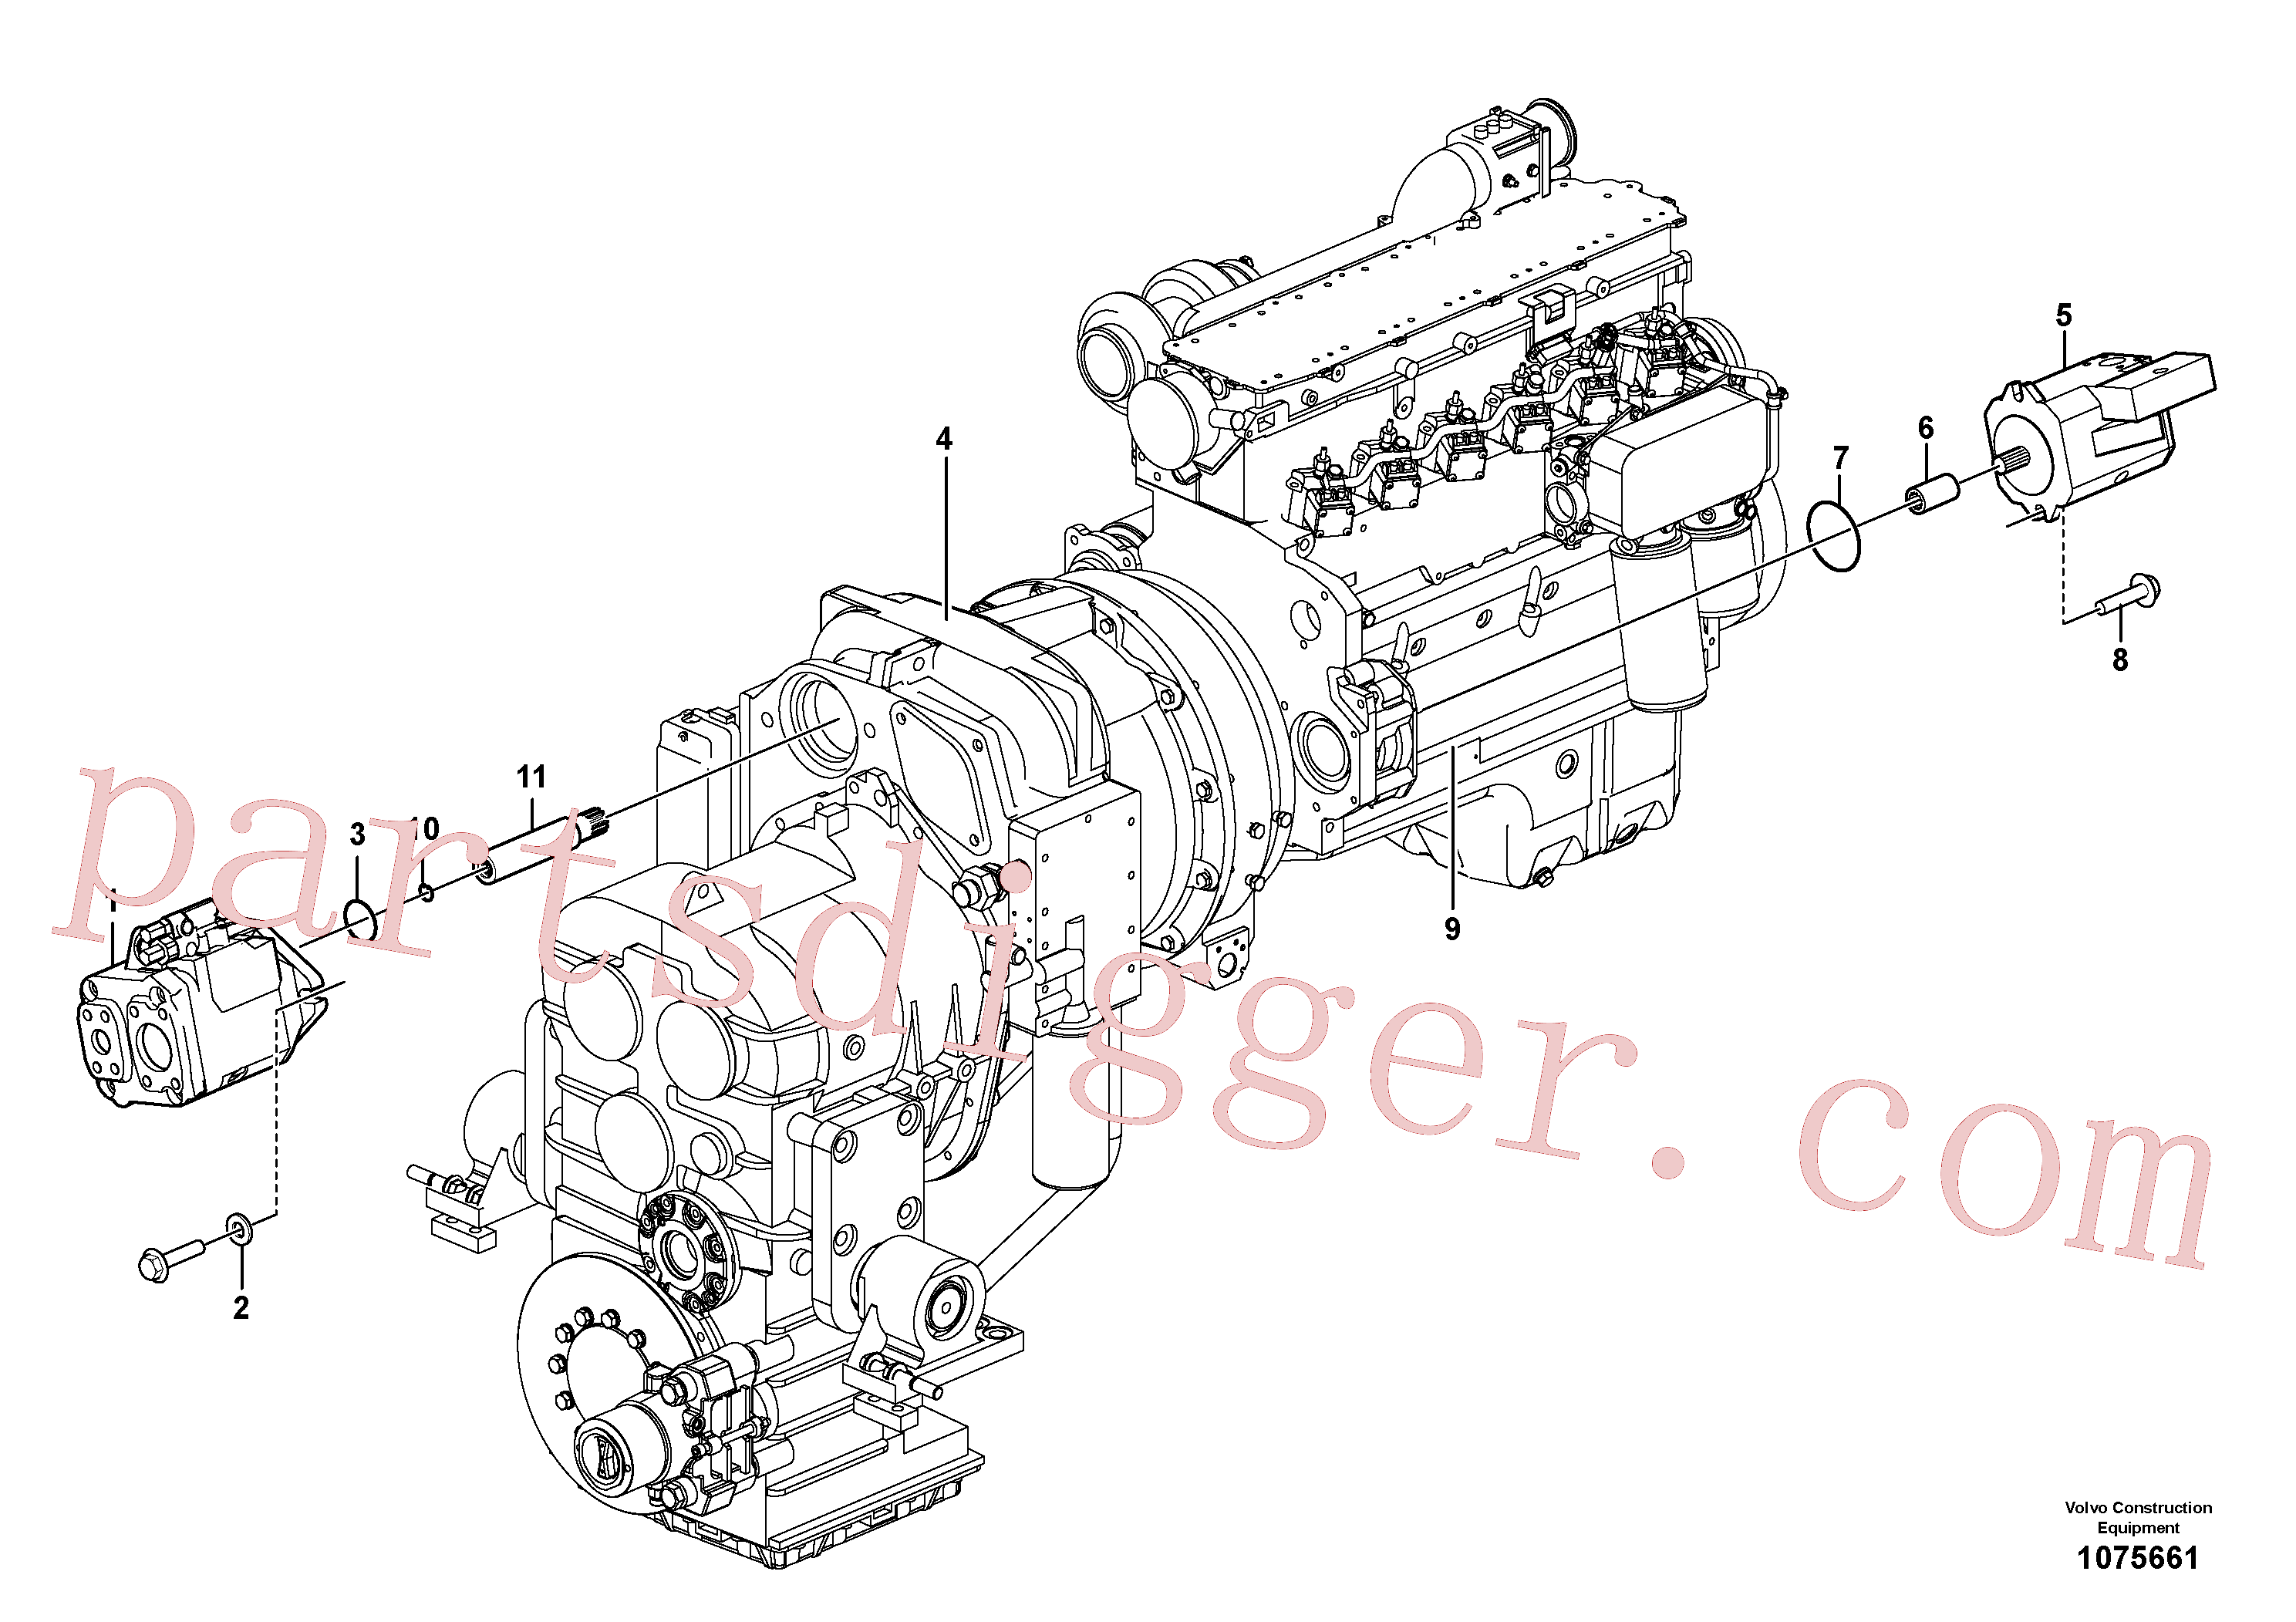 VOE11144861 for Volvo Hydraulic pump with fitting parts(1075661 assembly)